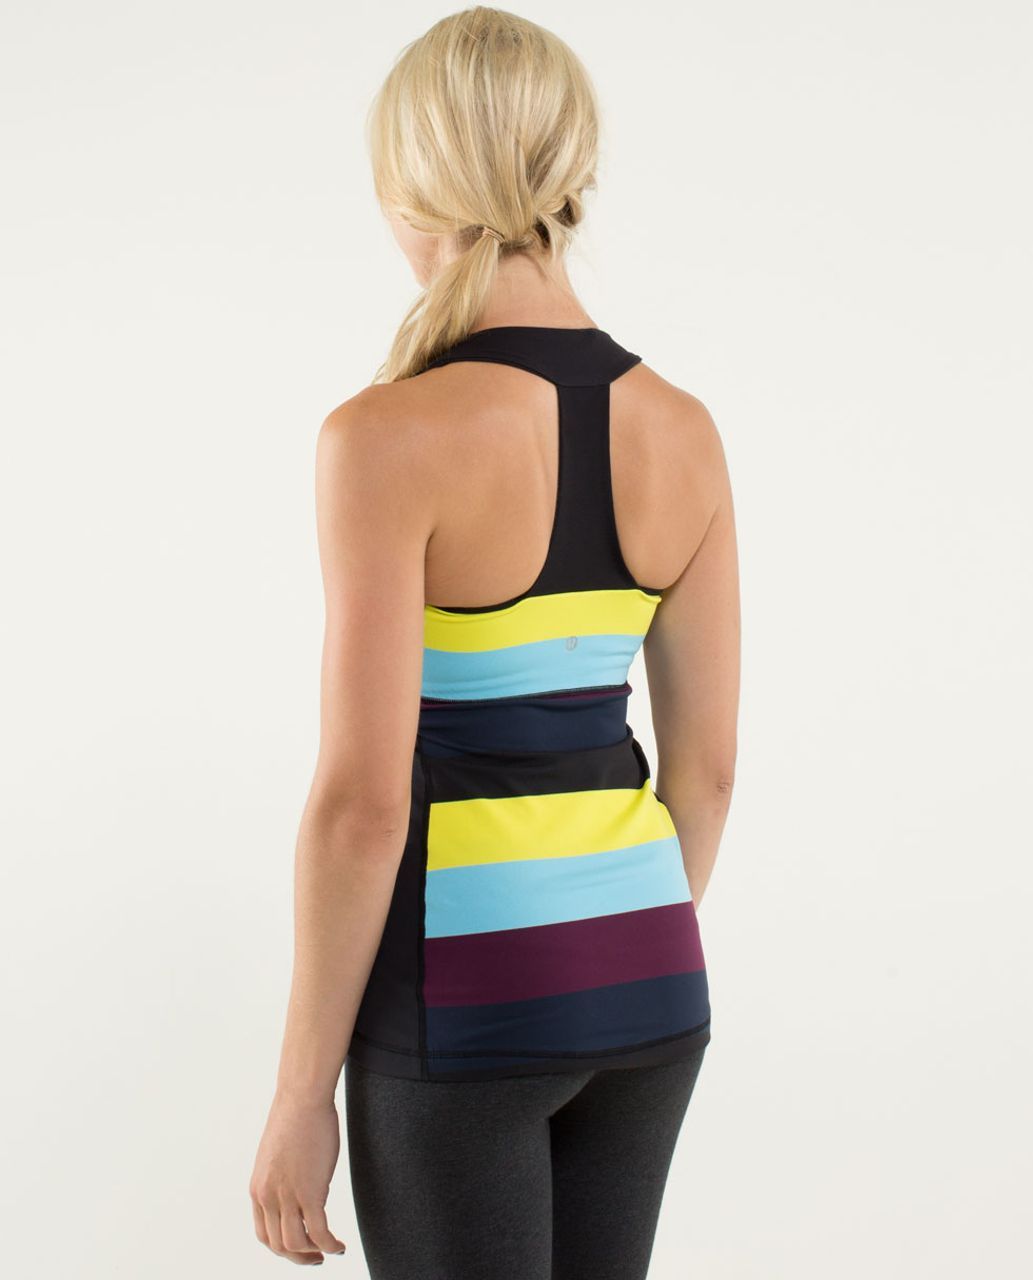 Lululemon Scoop Neck Tank - Pow Stripe Split Pea / Black